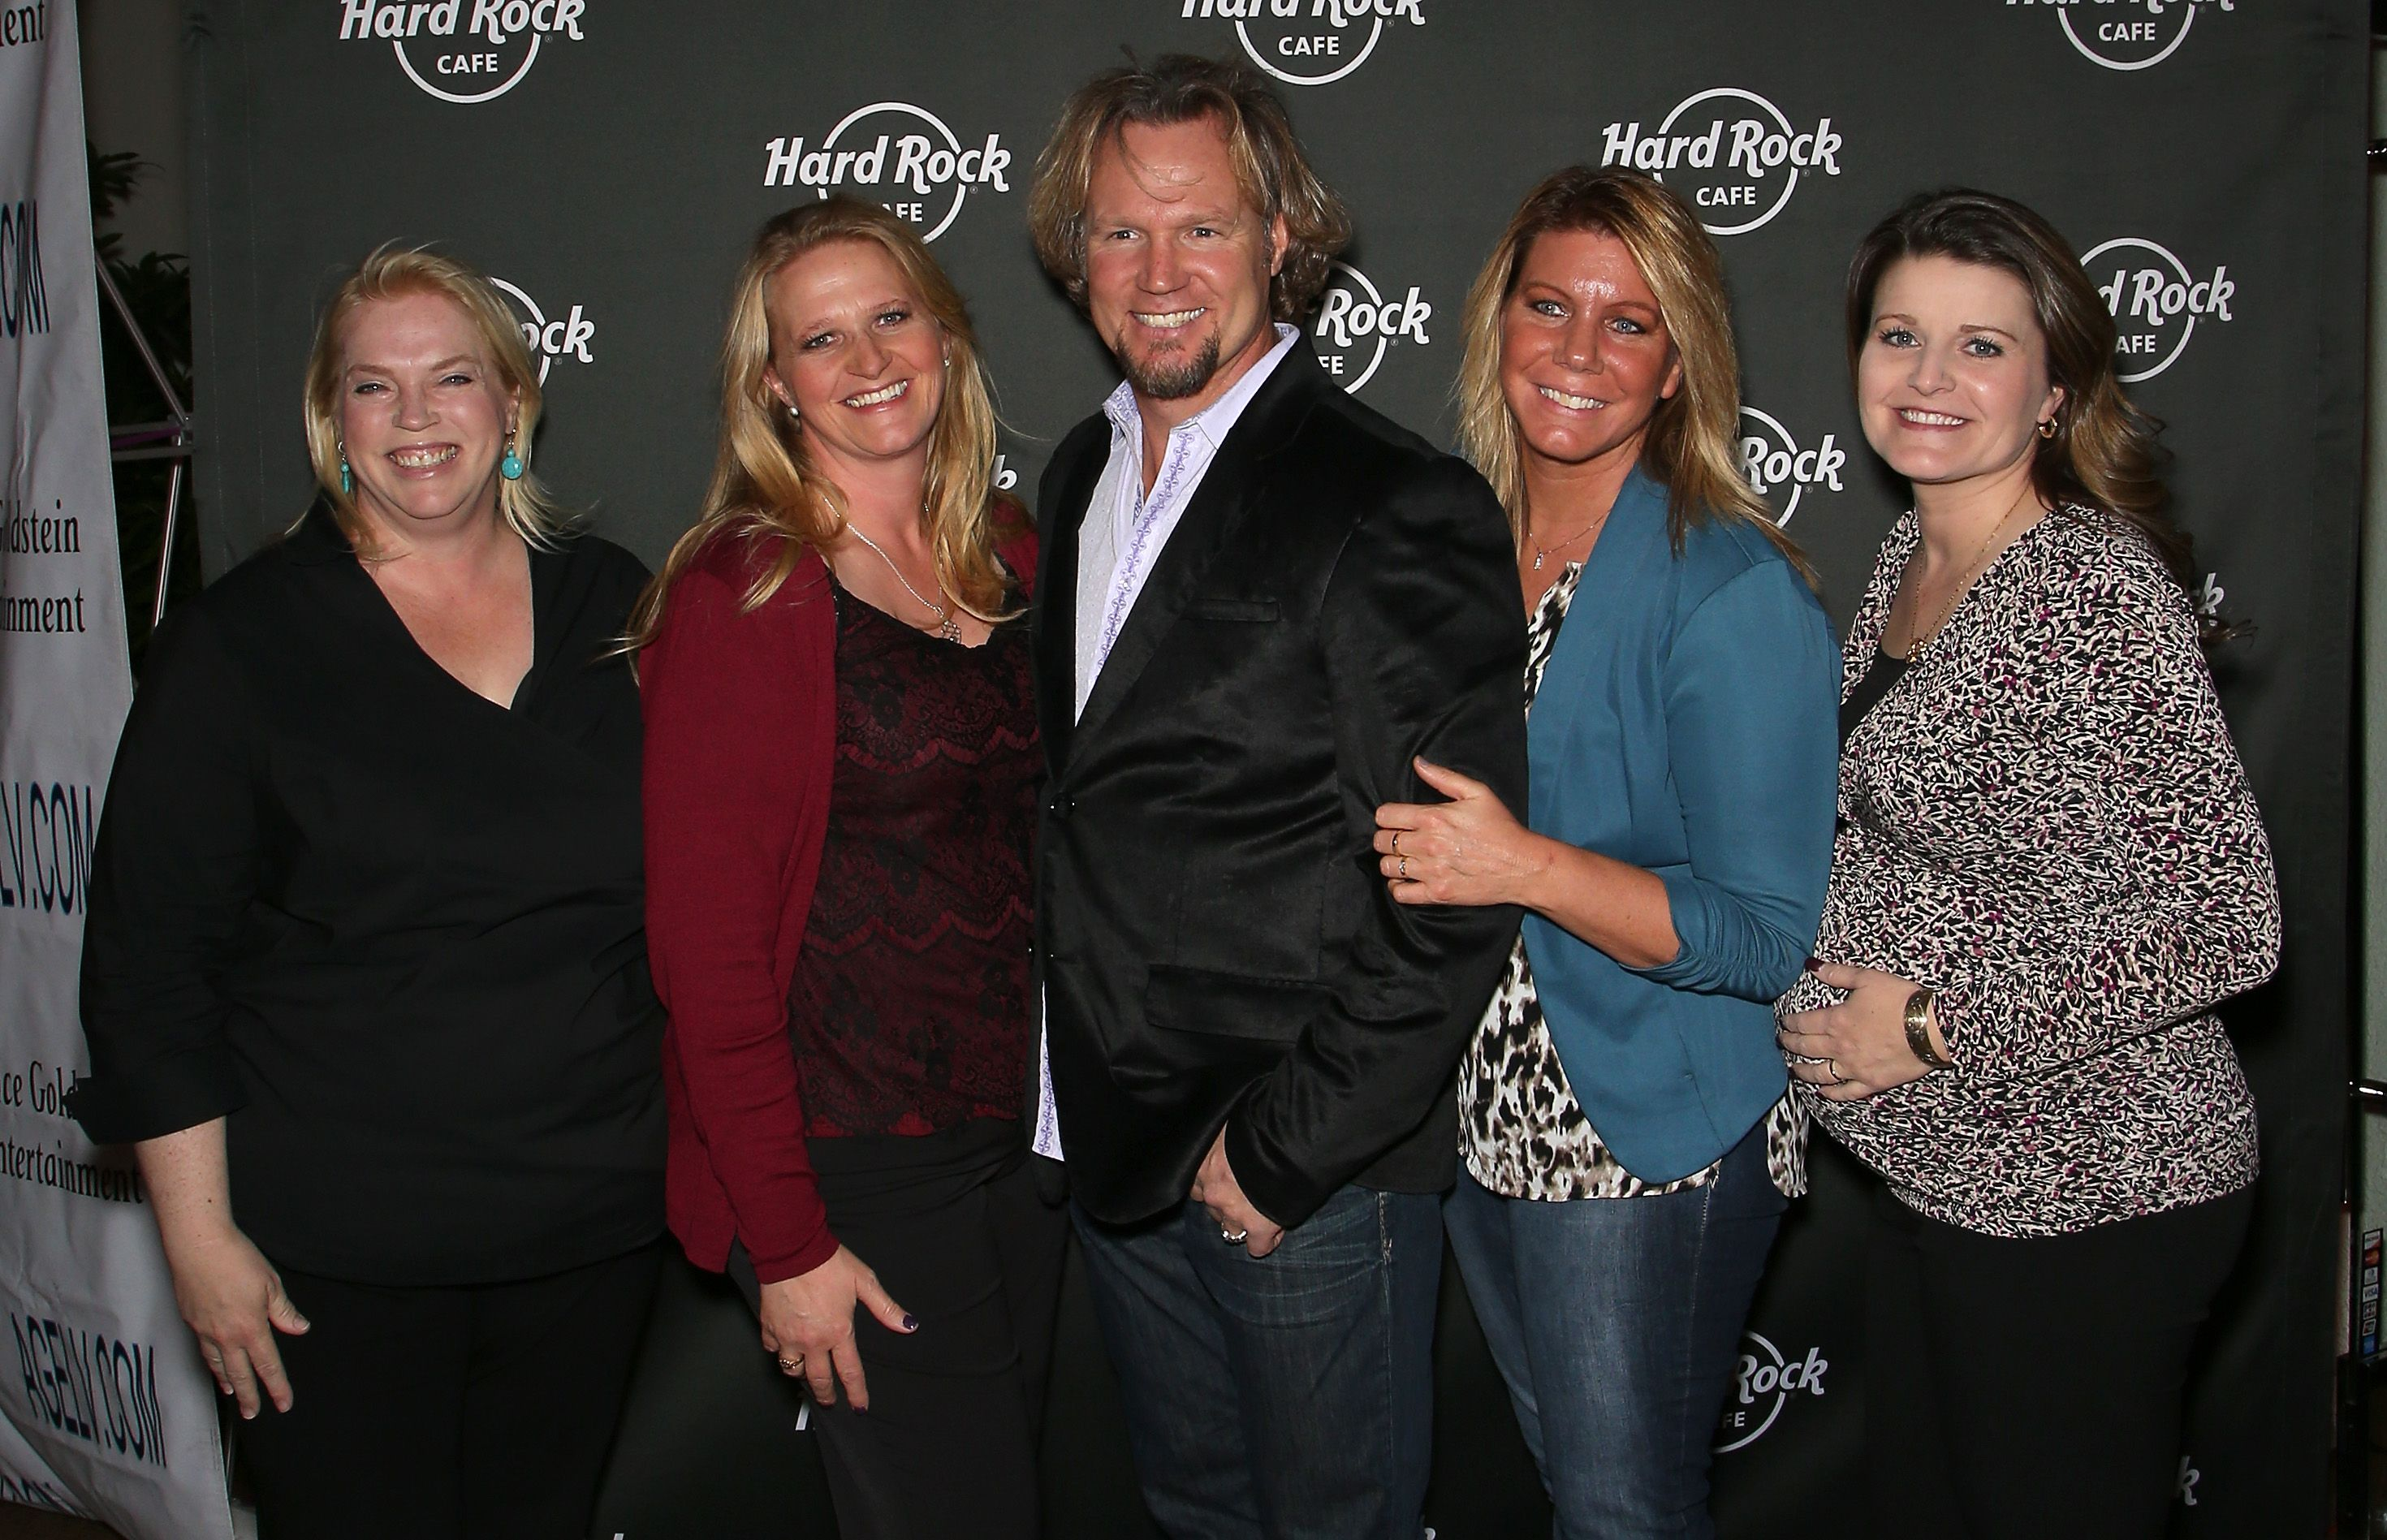 Kody Brown, Janelle Brown, Christine Brown, Meri Brown and Robyn Brown, during the Hard Rock Cafe Las Vegas at Hard Rock Hotel's 25th anniversary celebration on October 10, 2015 in Las Vegas, Nevada. | Source: Getty Images